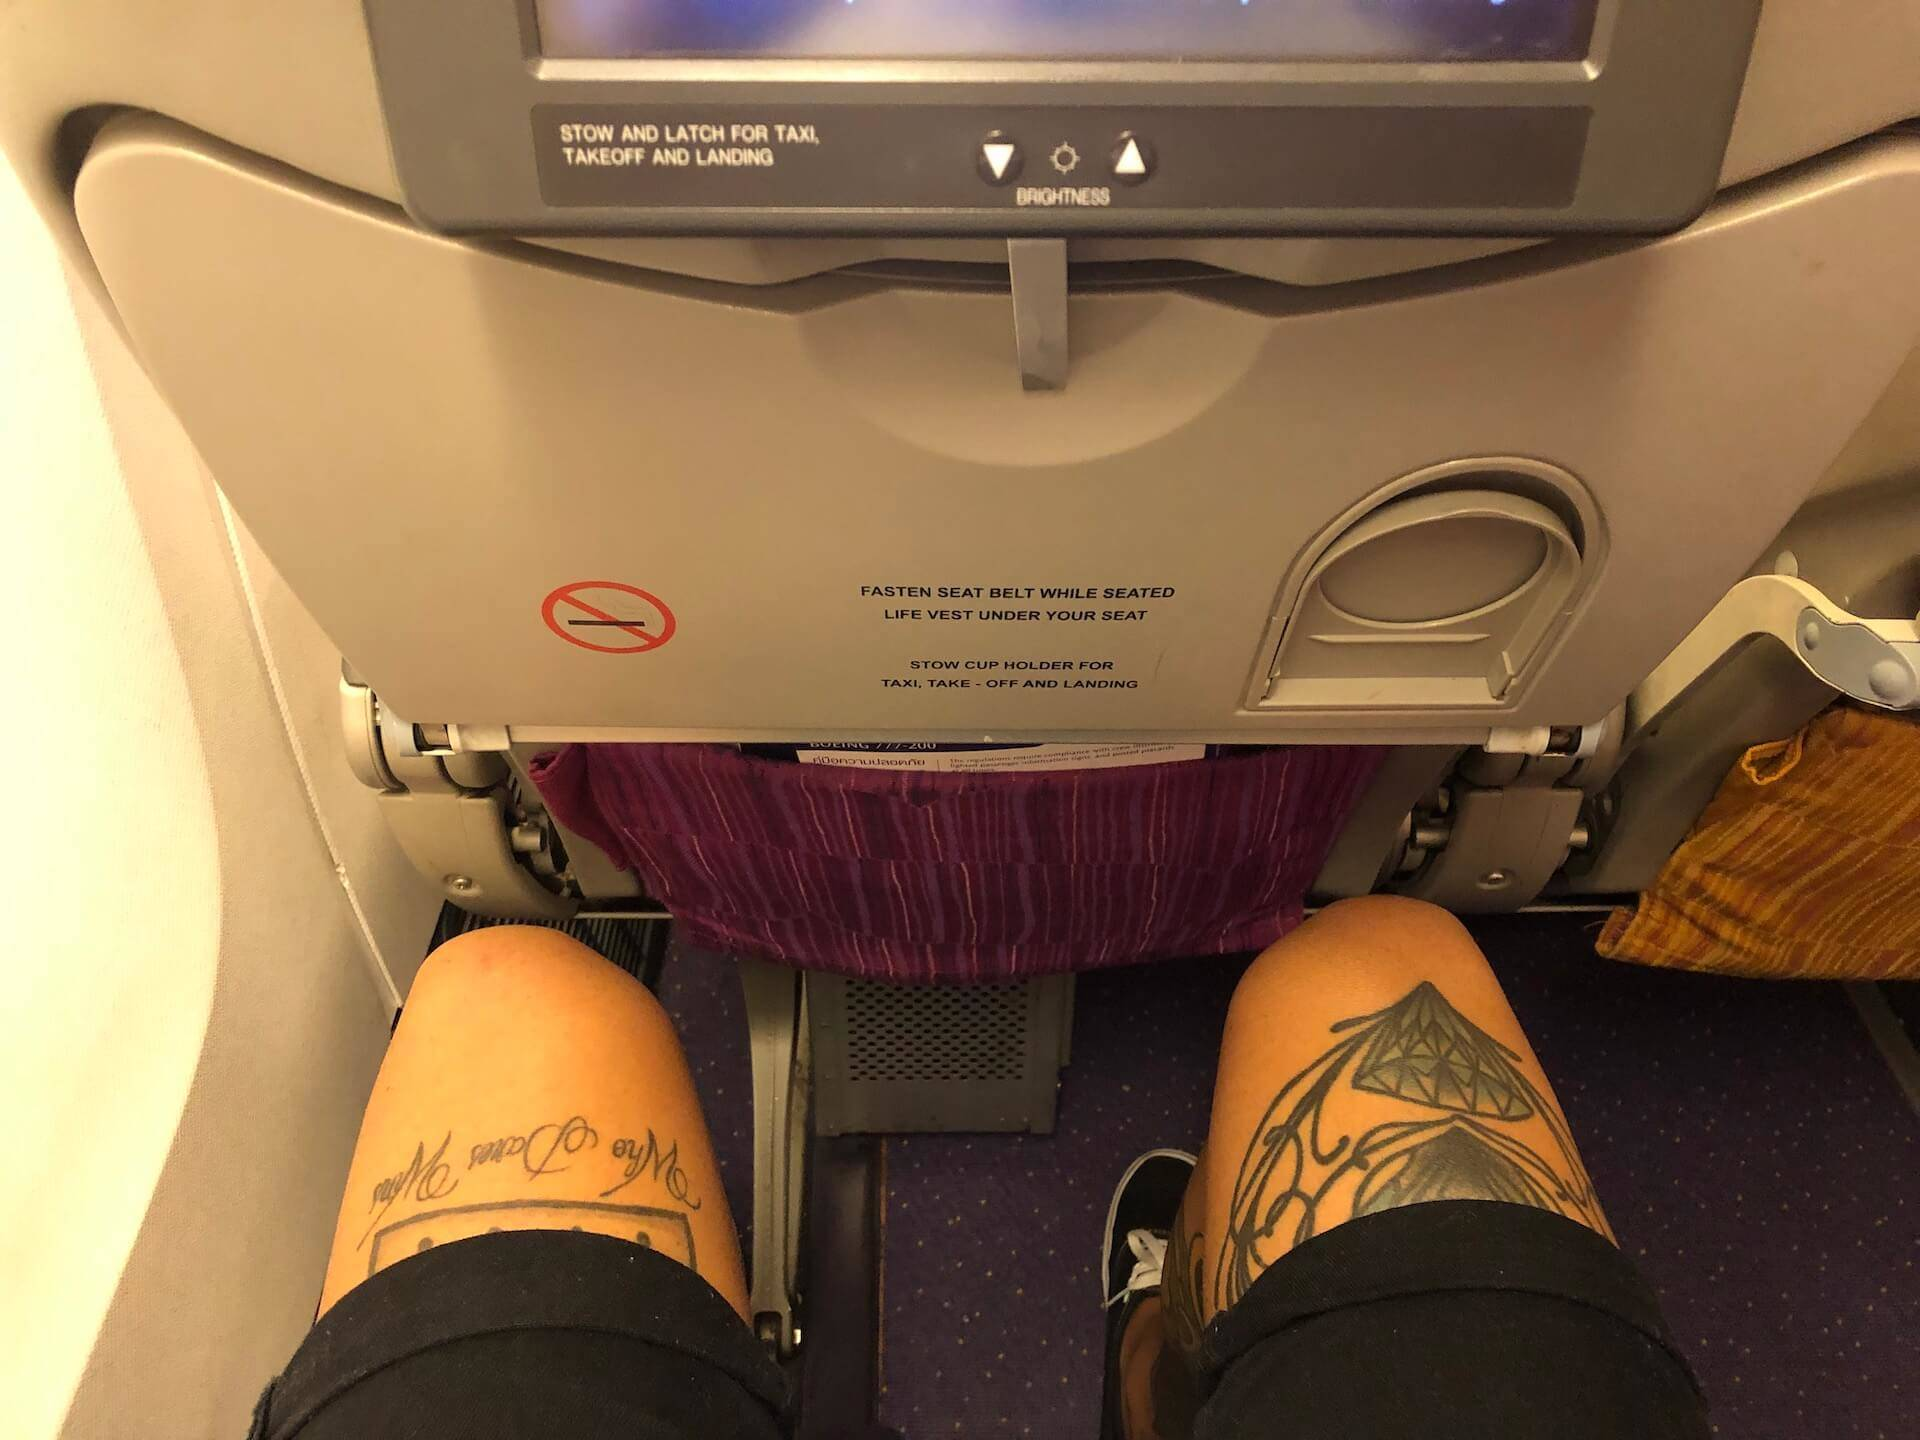 Thai Airways Boeing 777-200 Economy Class Beinfreiheit